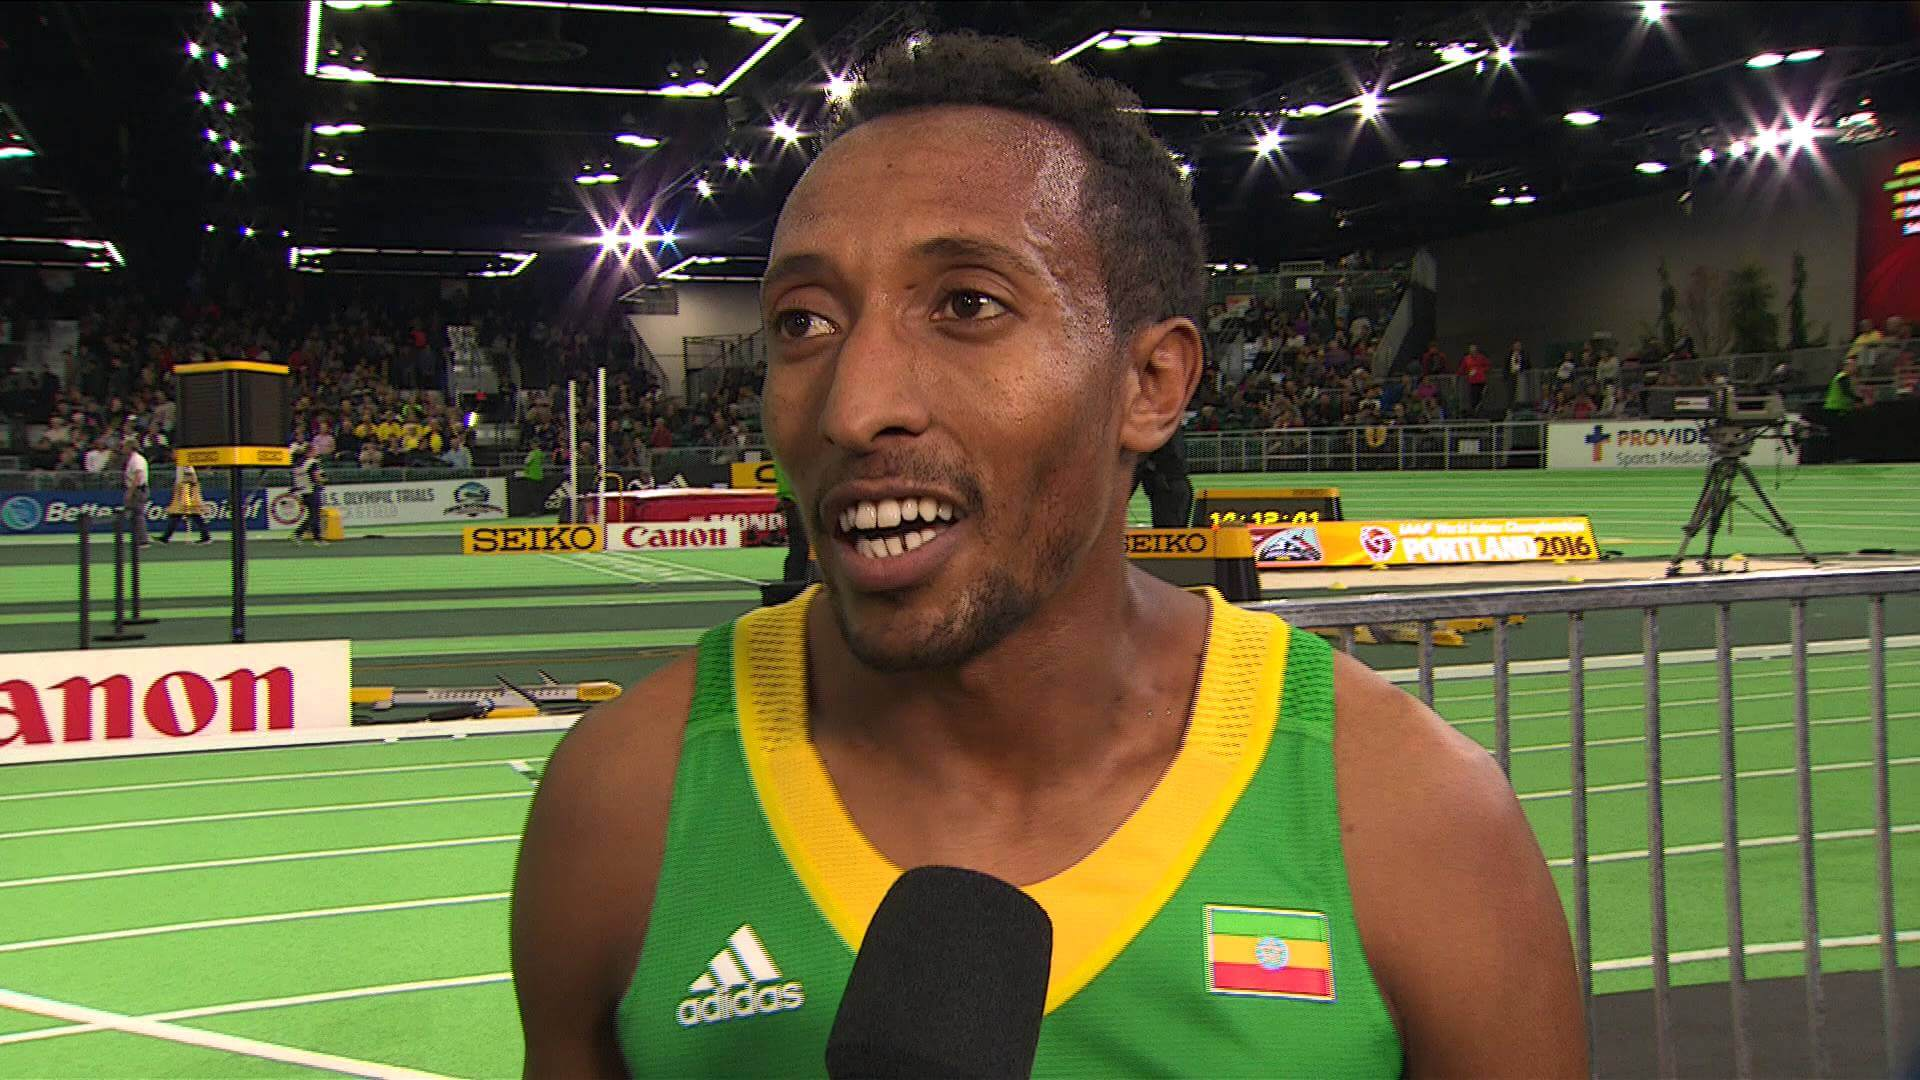 Mohamed Aman - The Best Ethiopian Male Athlete of All Time